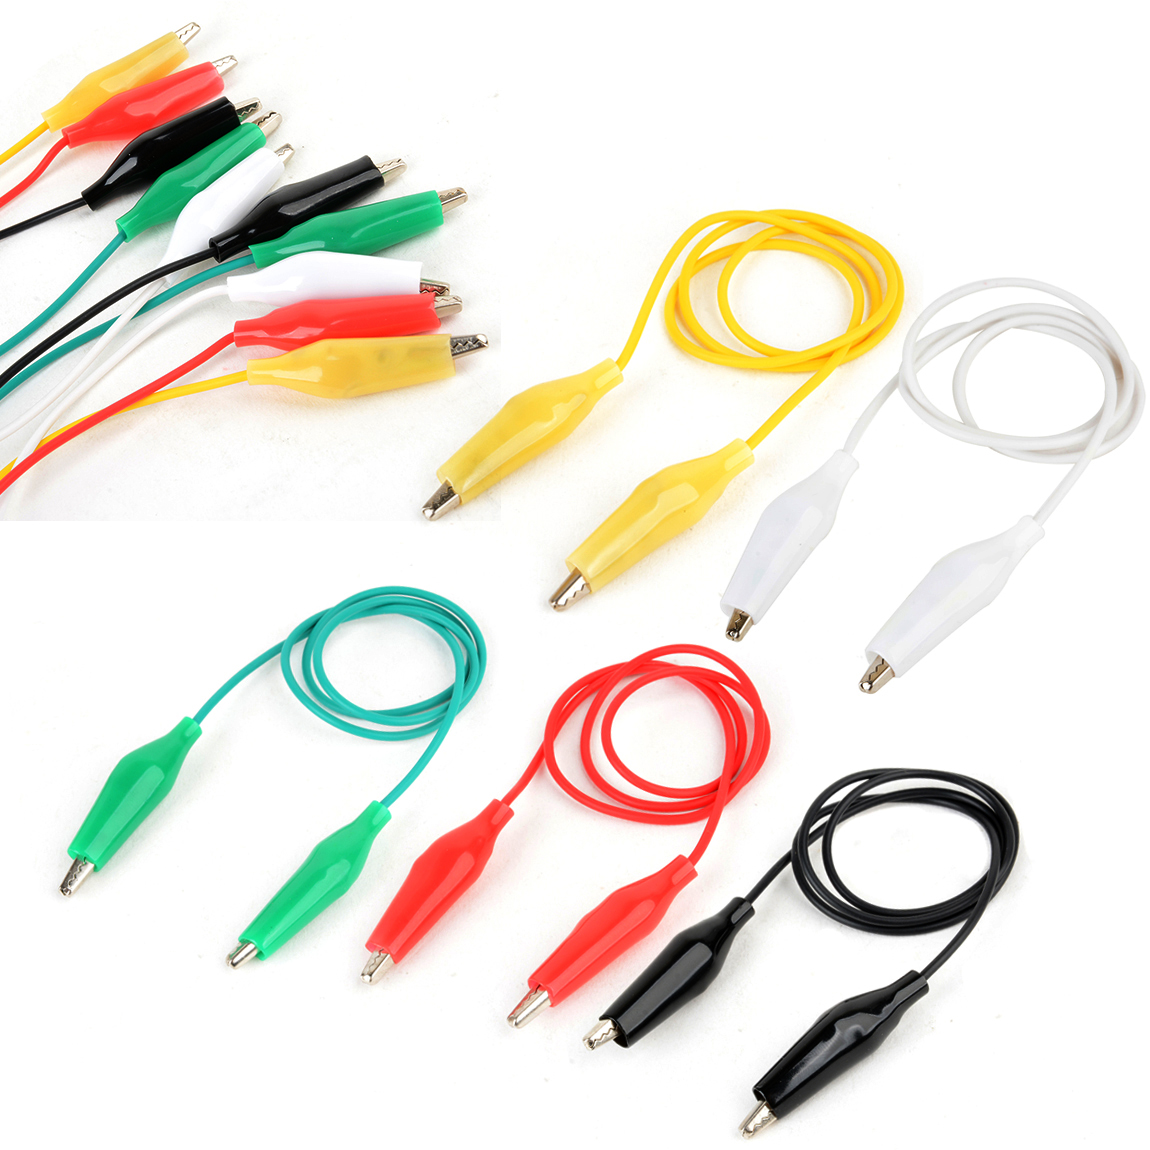 SE TL10 10-Piece Test Lead Set with Alligator Clips Authorized Distributor